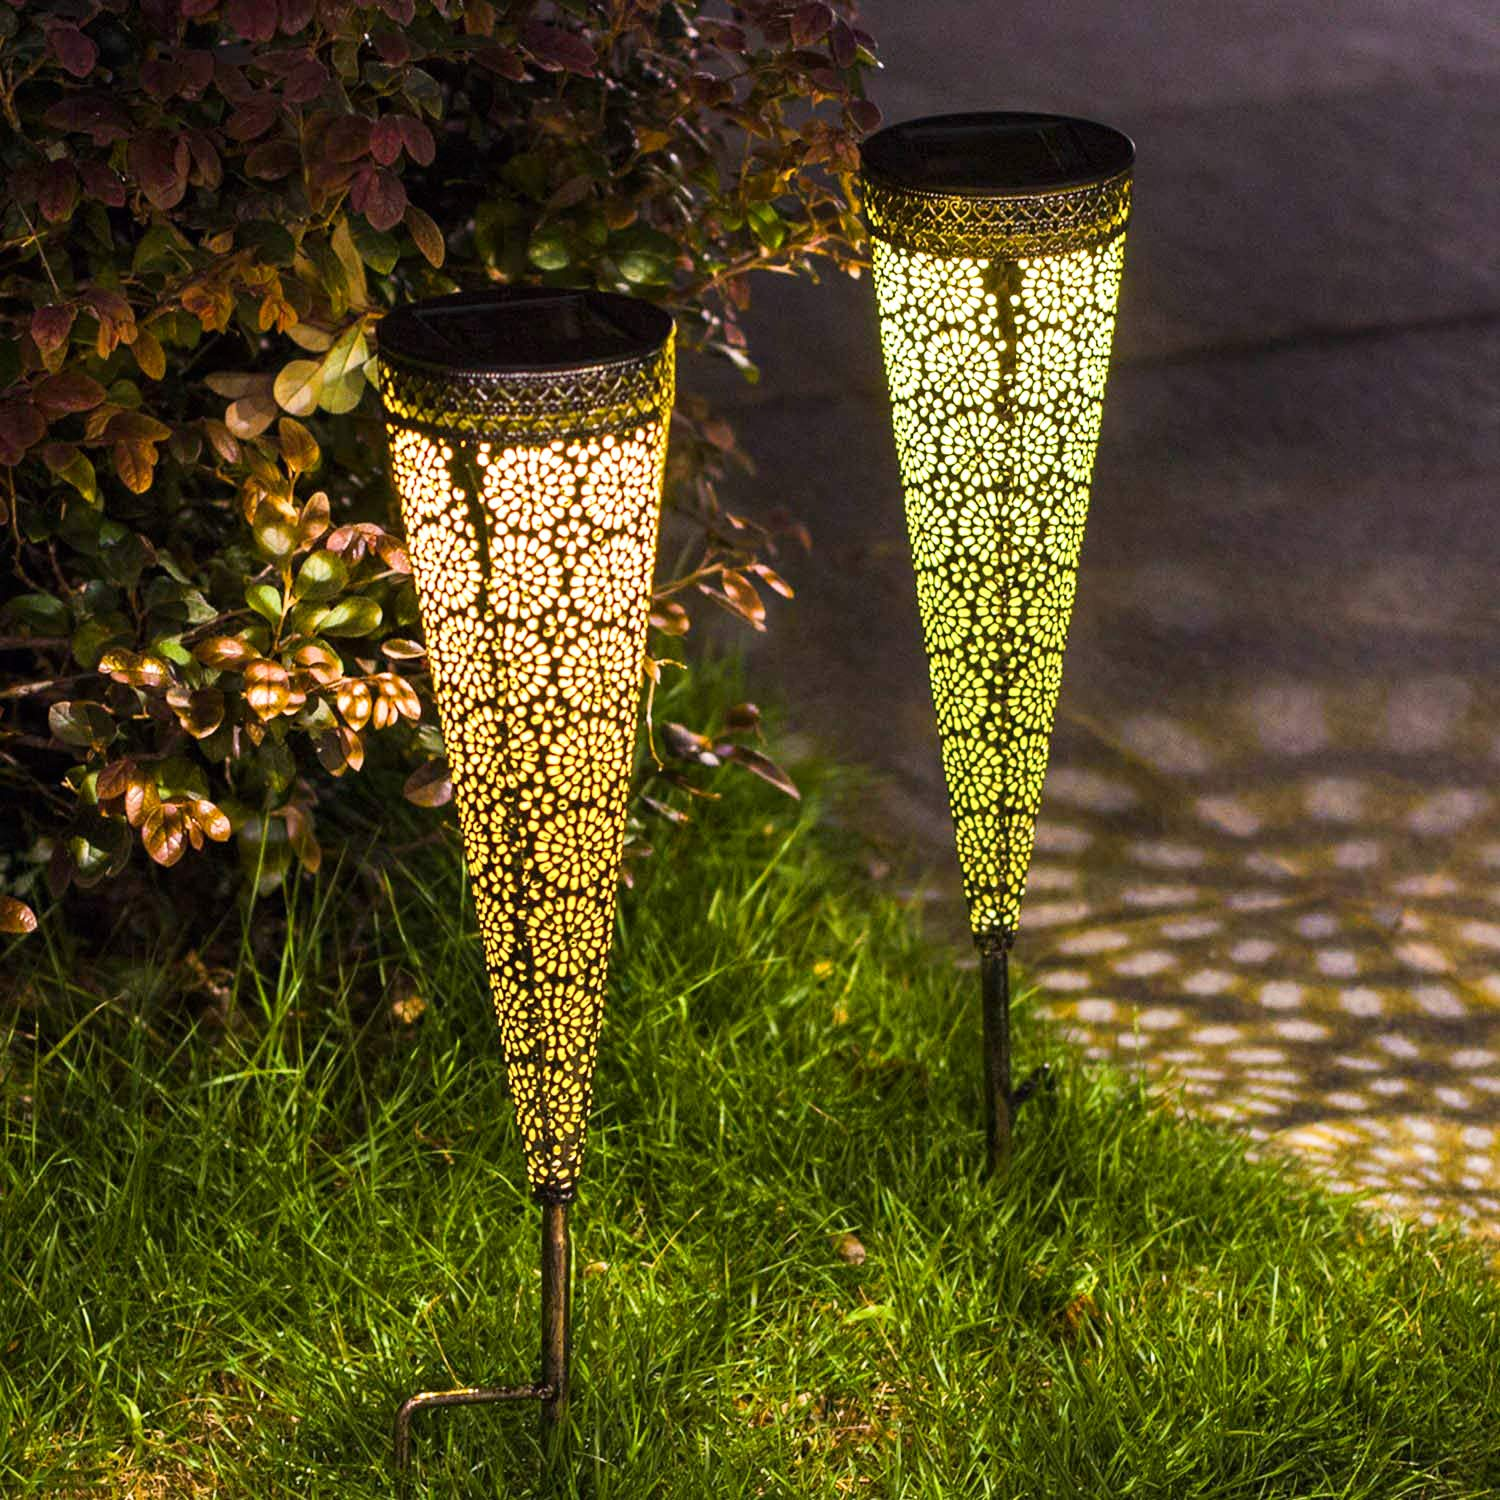 [Set of 2]TAKE ME Solar Pathway Lights Garden Outdoor,Waterproof Metal Decorative Stakes for Walkway,Yard,Lawn,Patio